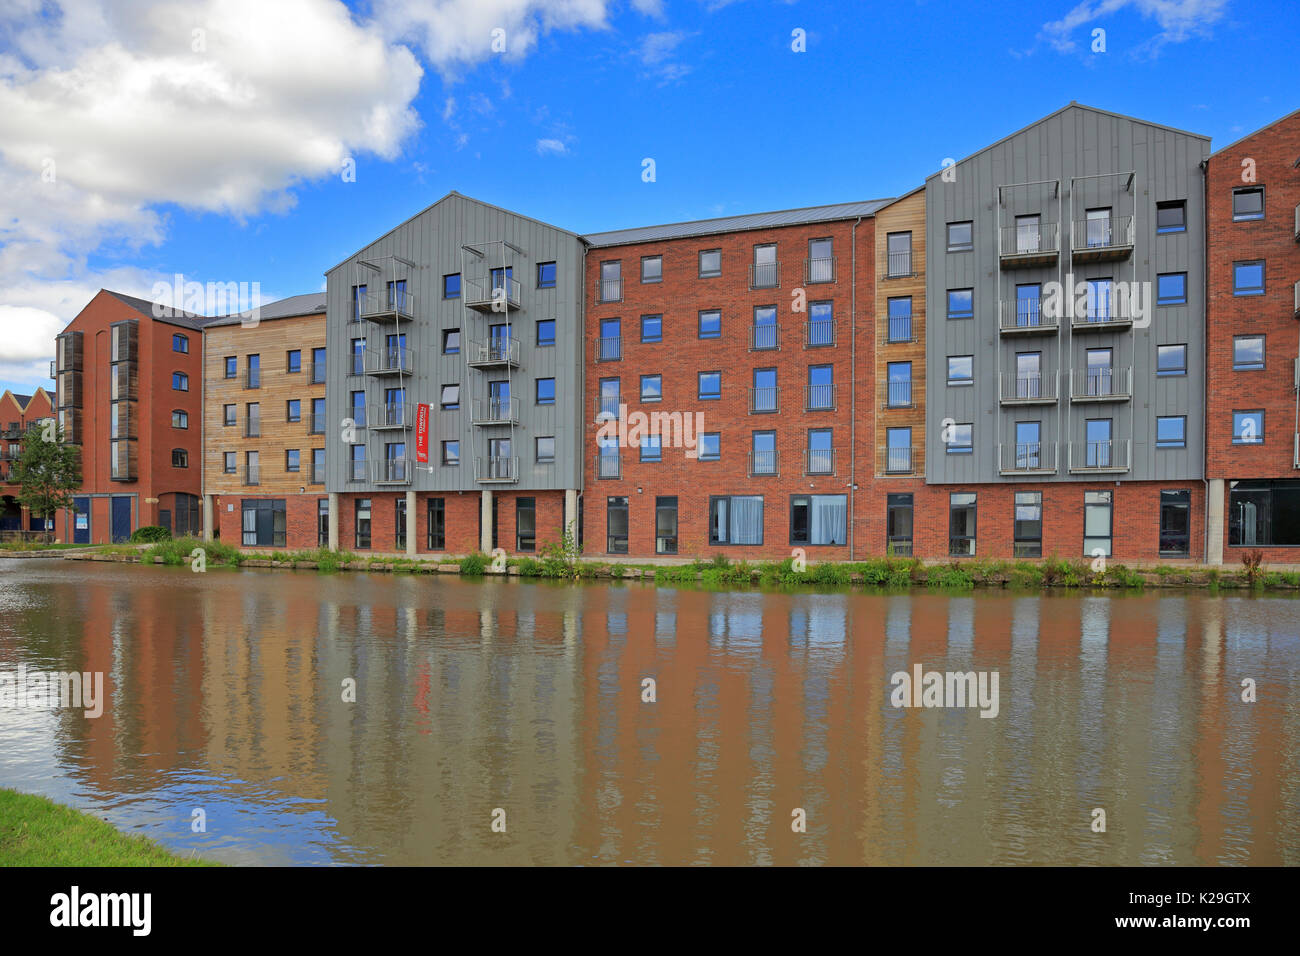 The Towpath student accommodation by the Shropshire Union Canal, Wharf View, Chester, Cheshire, England, UK. - Stock Image